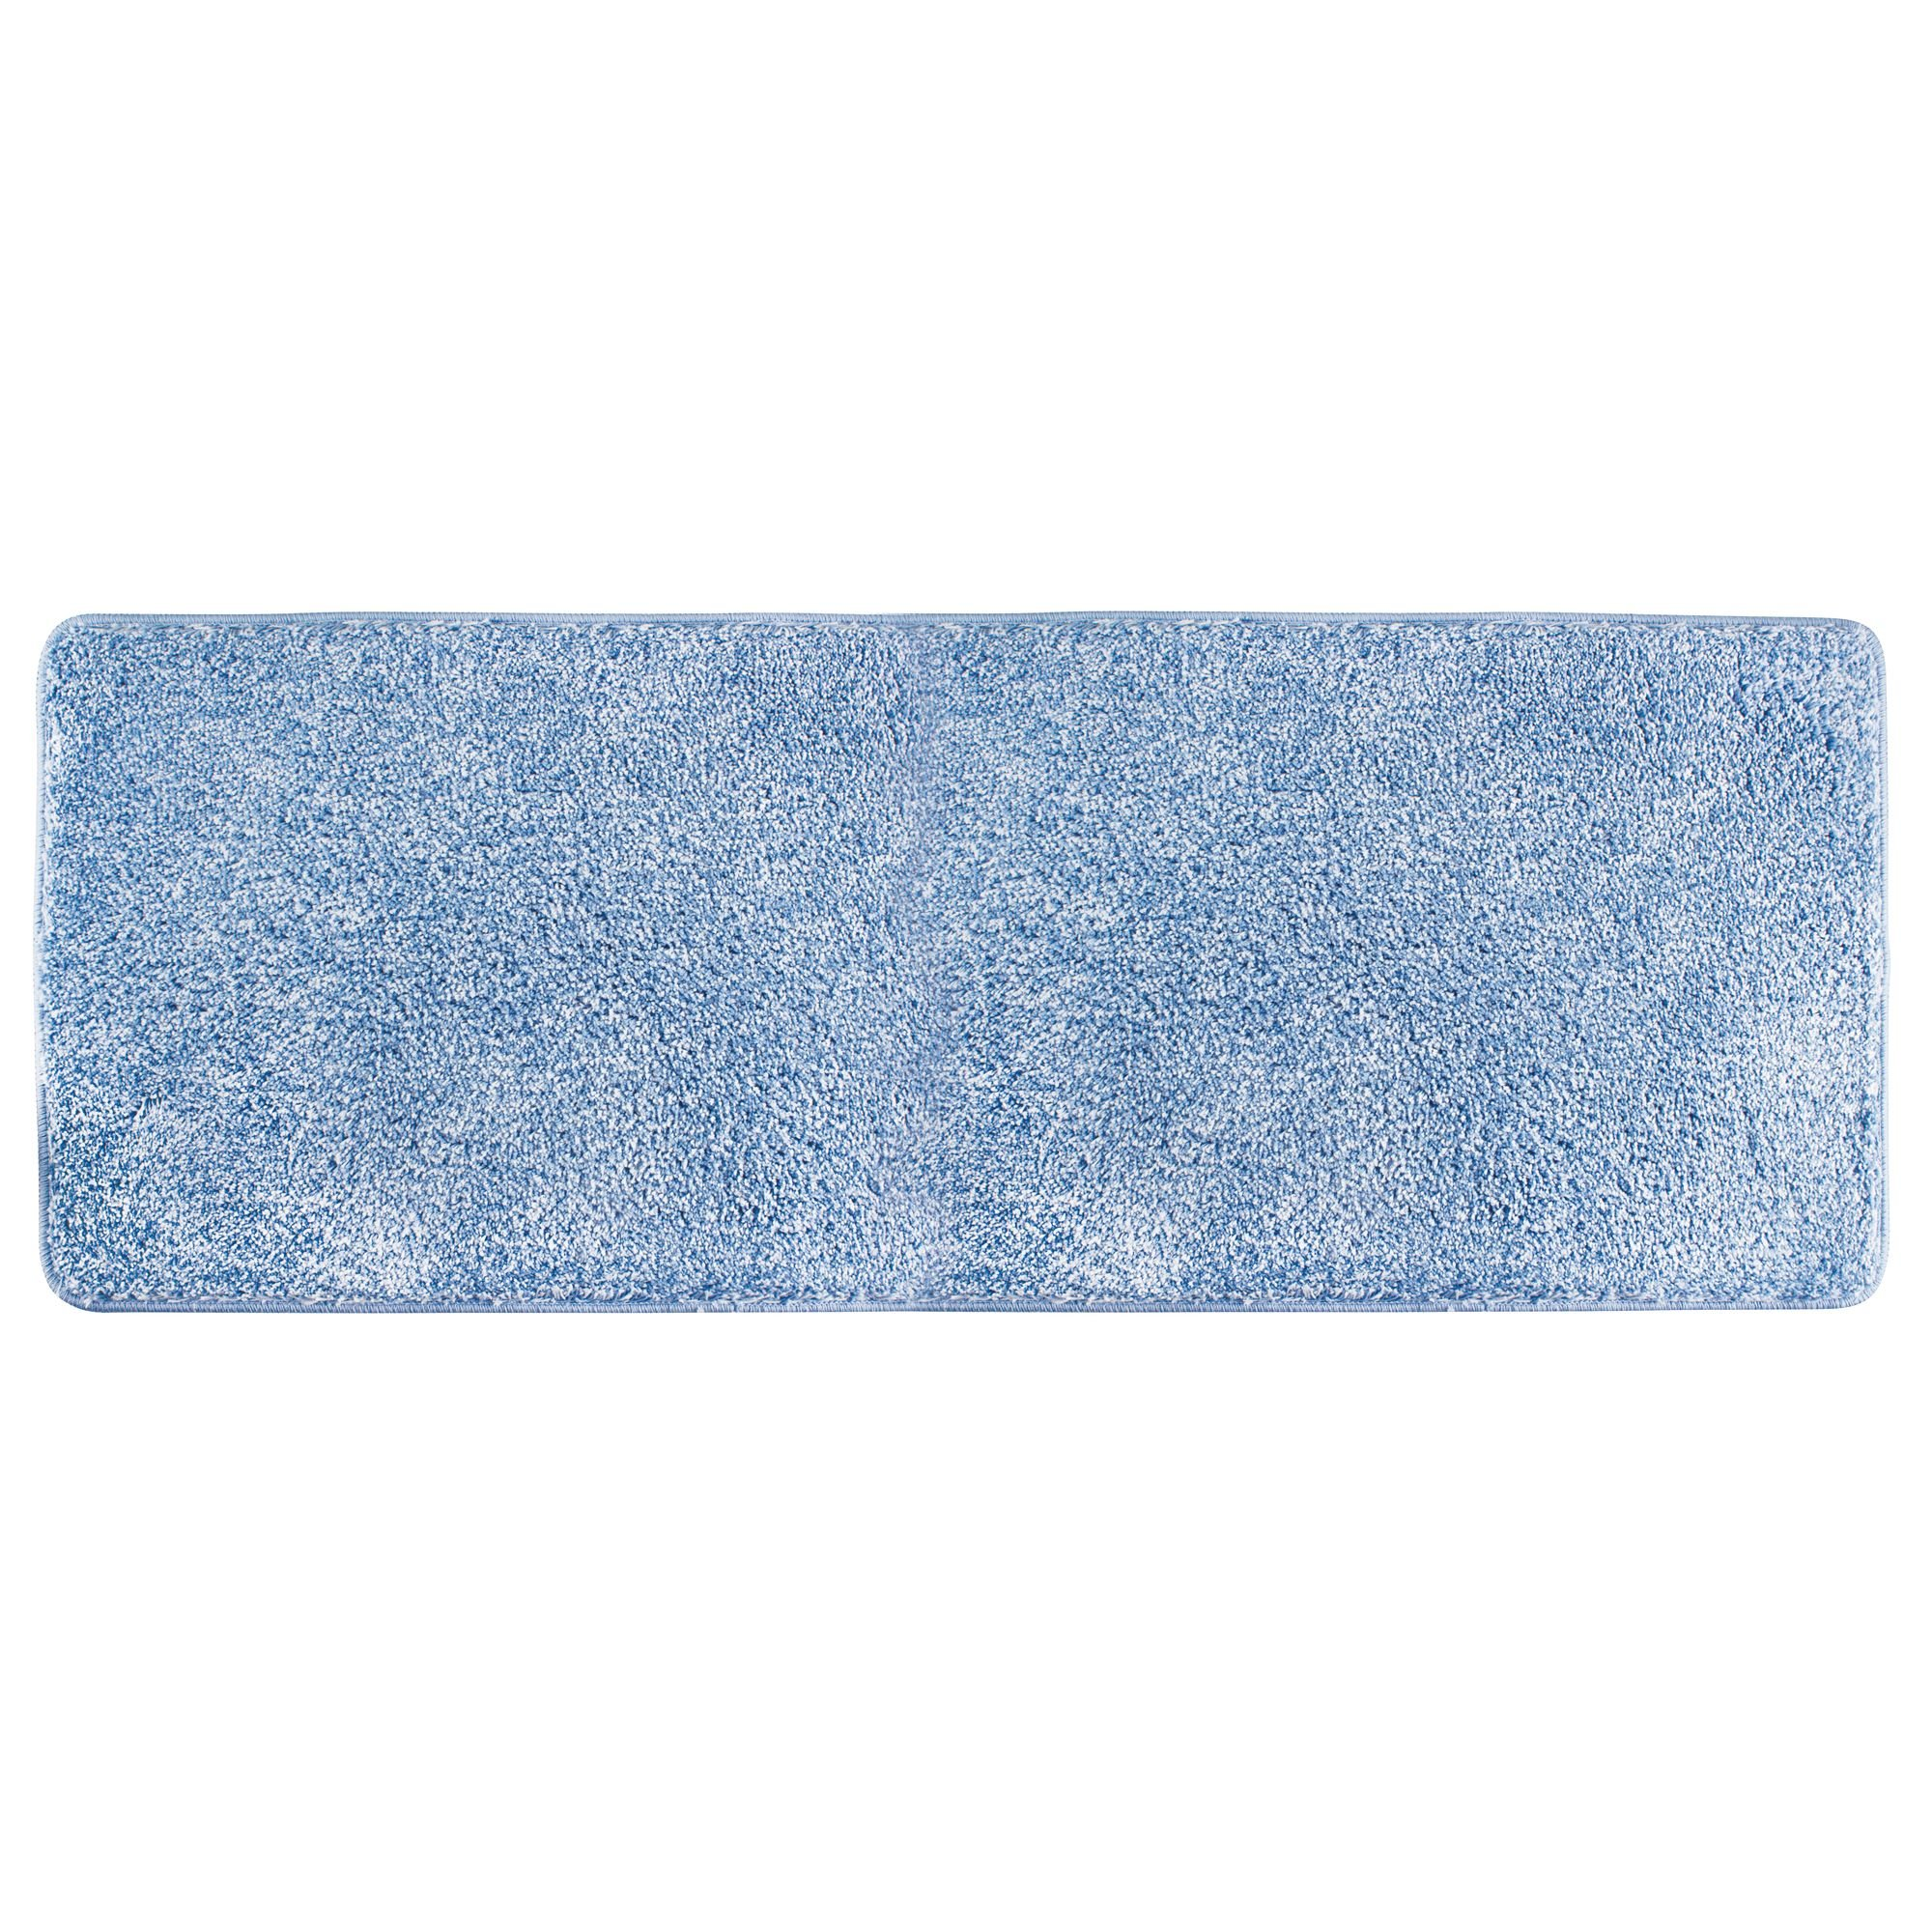 mDesign Soft Microfiber Polyester Non-Slip Extra-Long Spa Mat/Runner, Plush Water Absorbent Accent Rug for Bathroom Vanity, Bathtub/Shower, Machine Washable - 60'' x 21'' - Heathered Light Blue